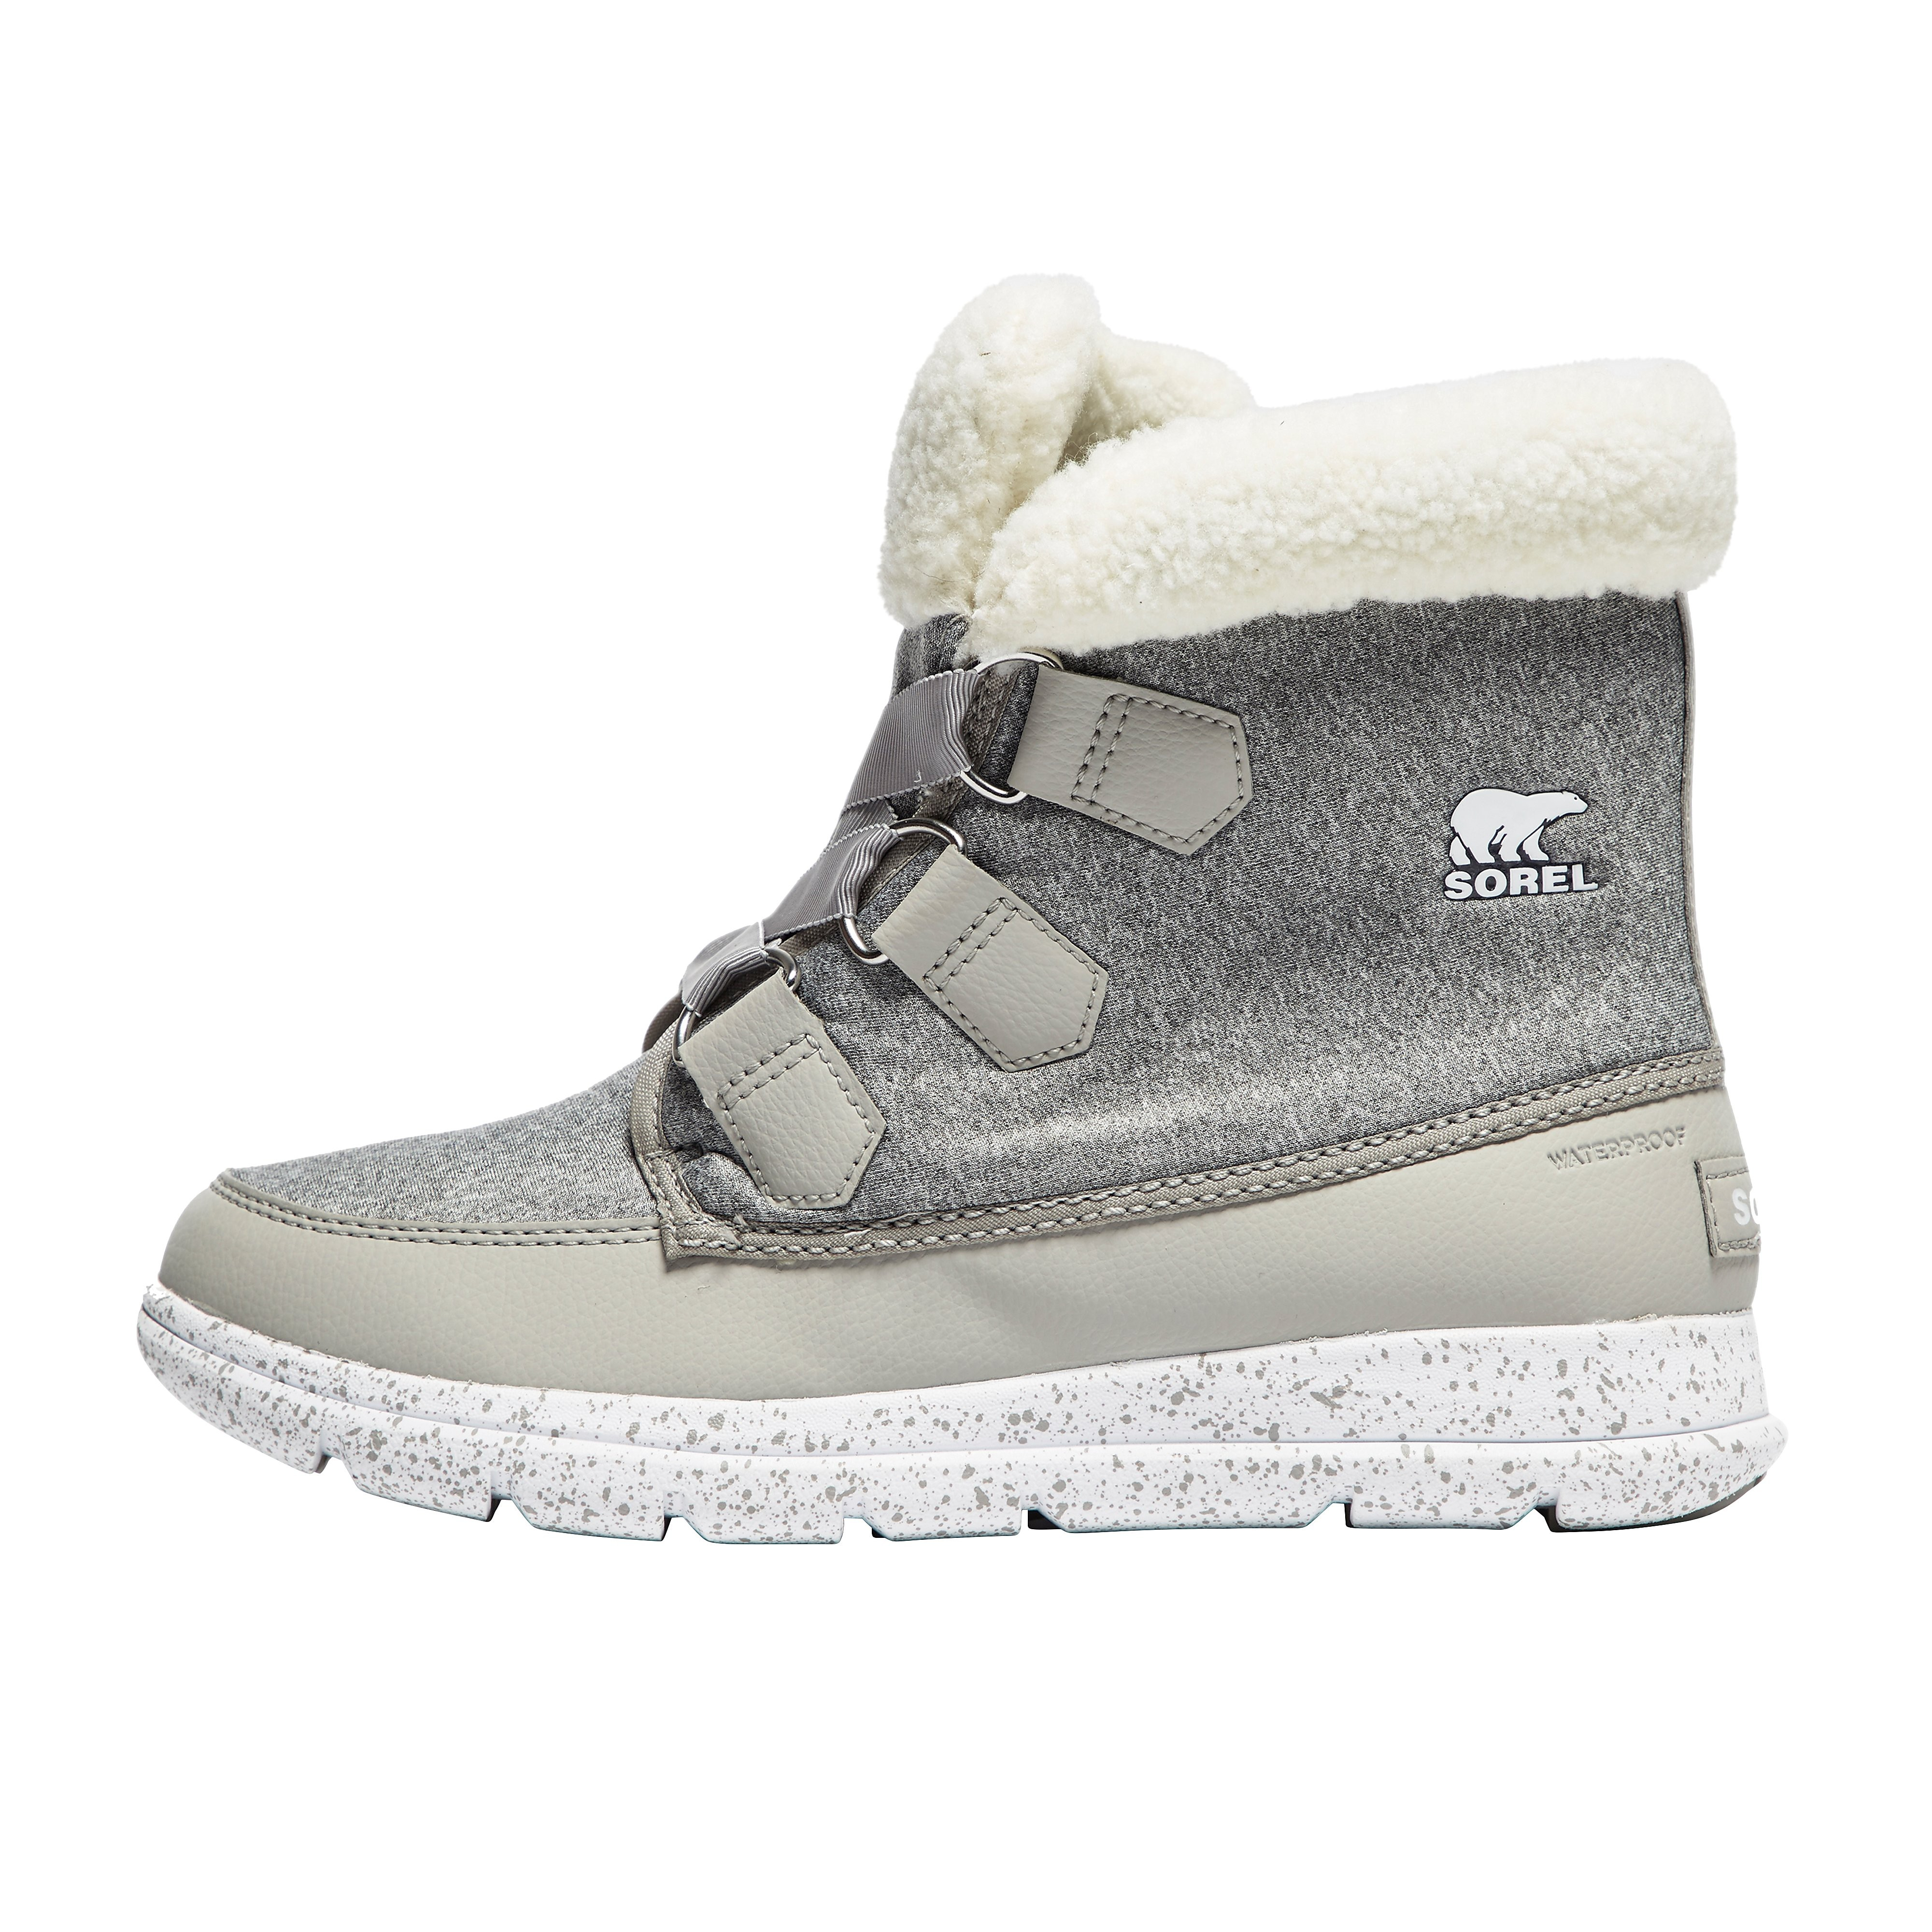 Sorel Explorer Carnival Women's Walking Boots